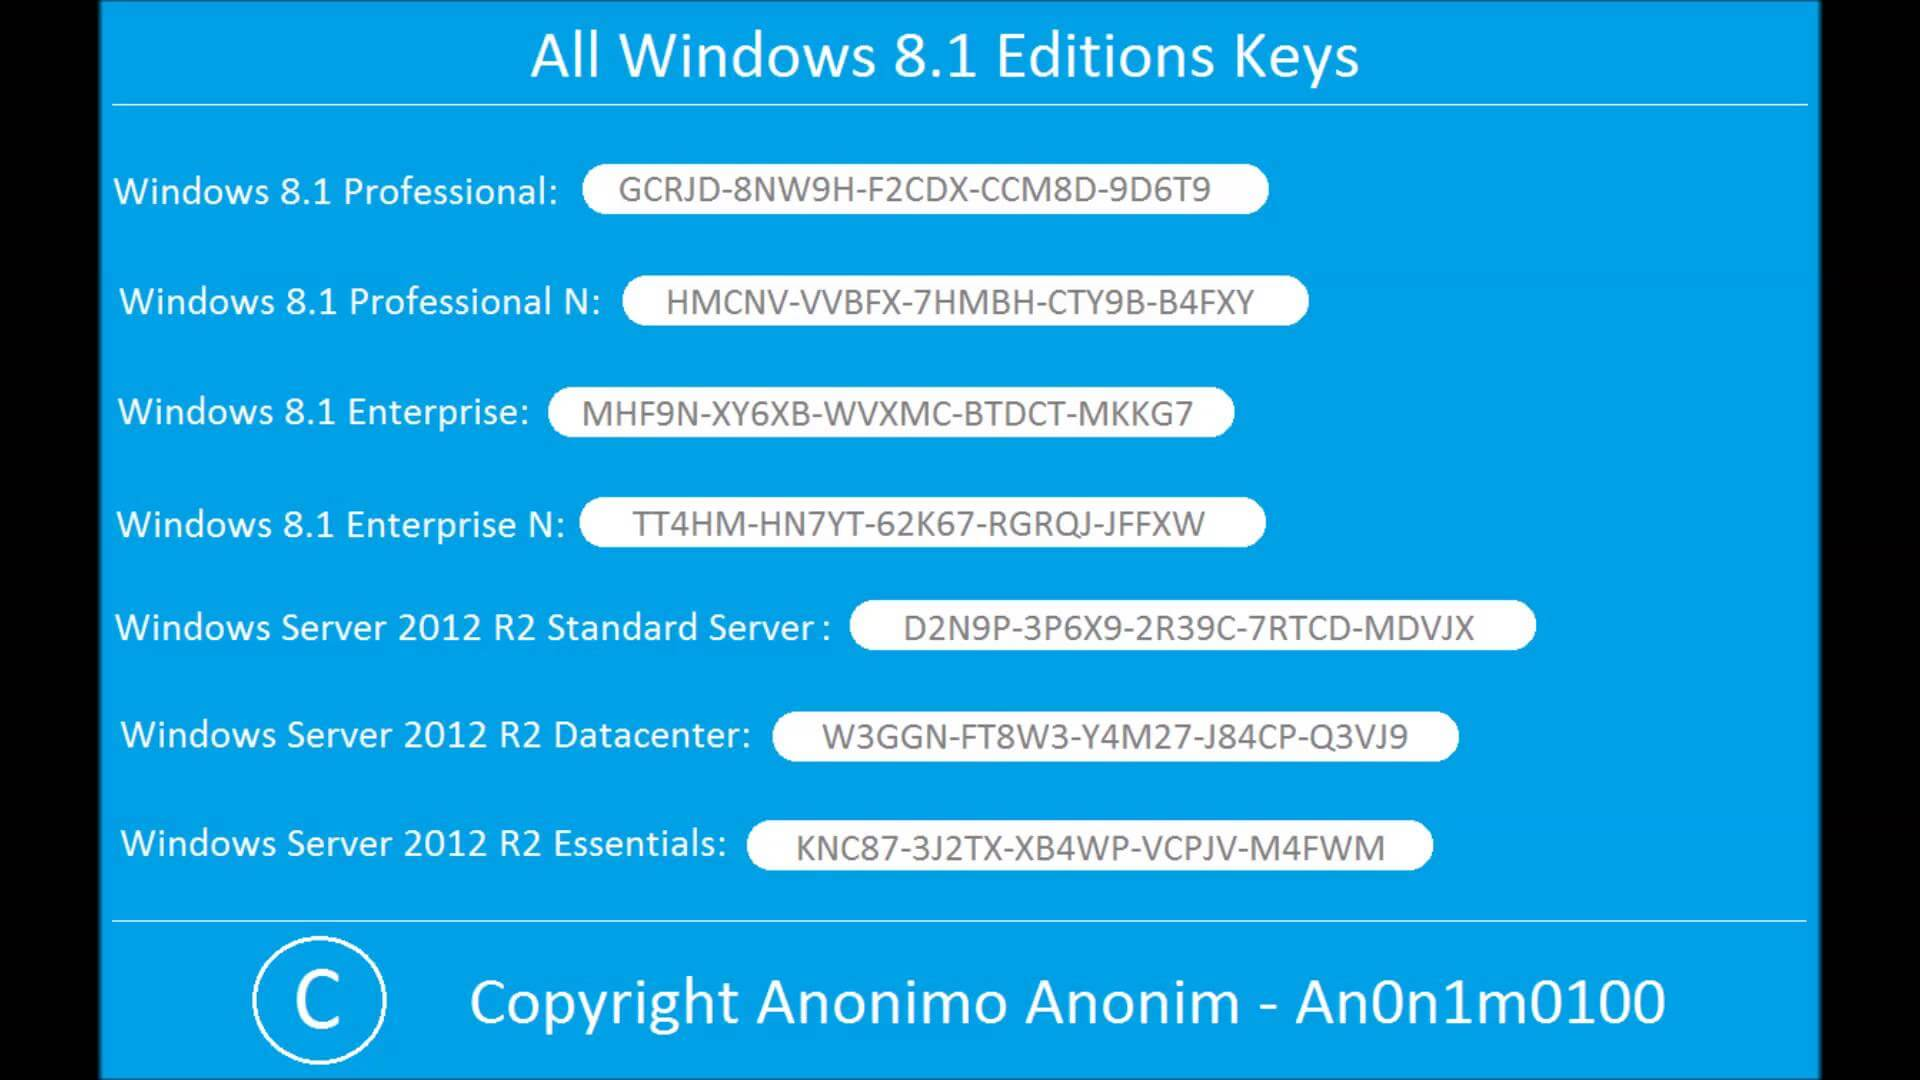 product key for windows 8 single language 64 bit